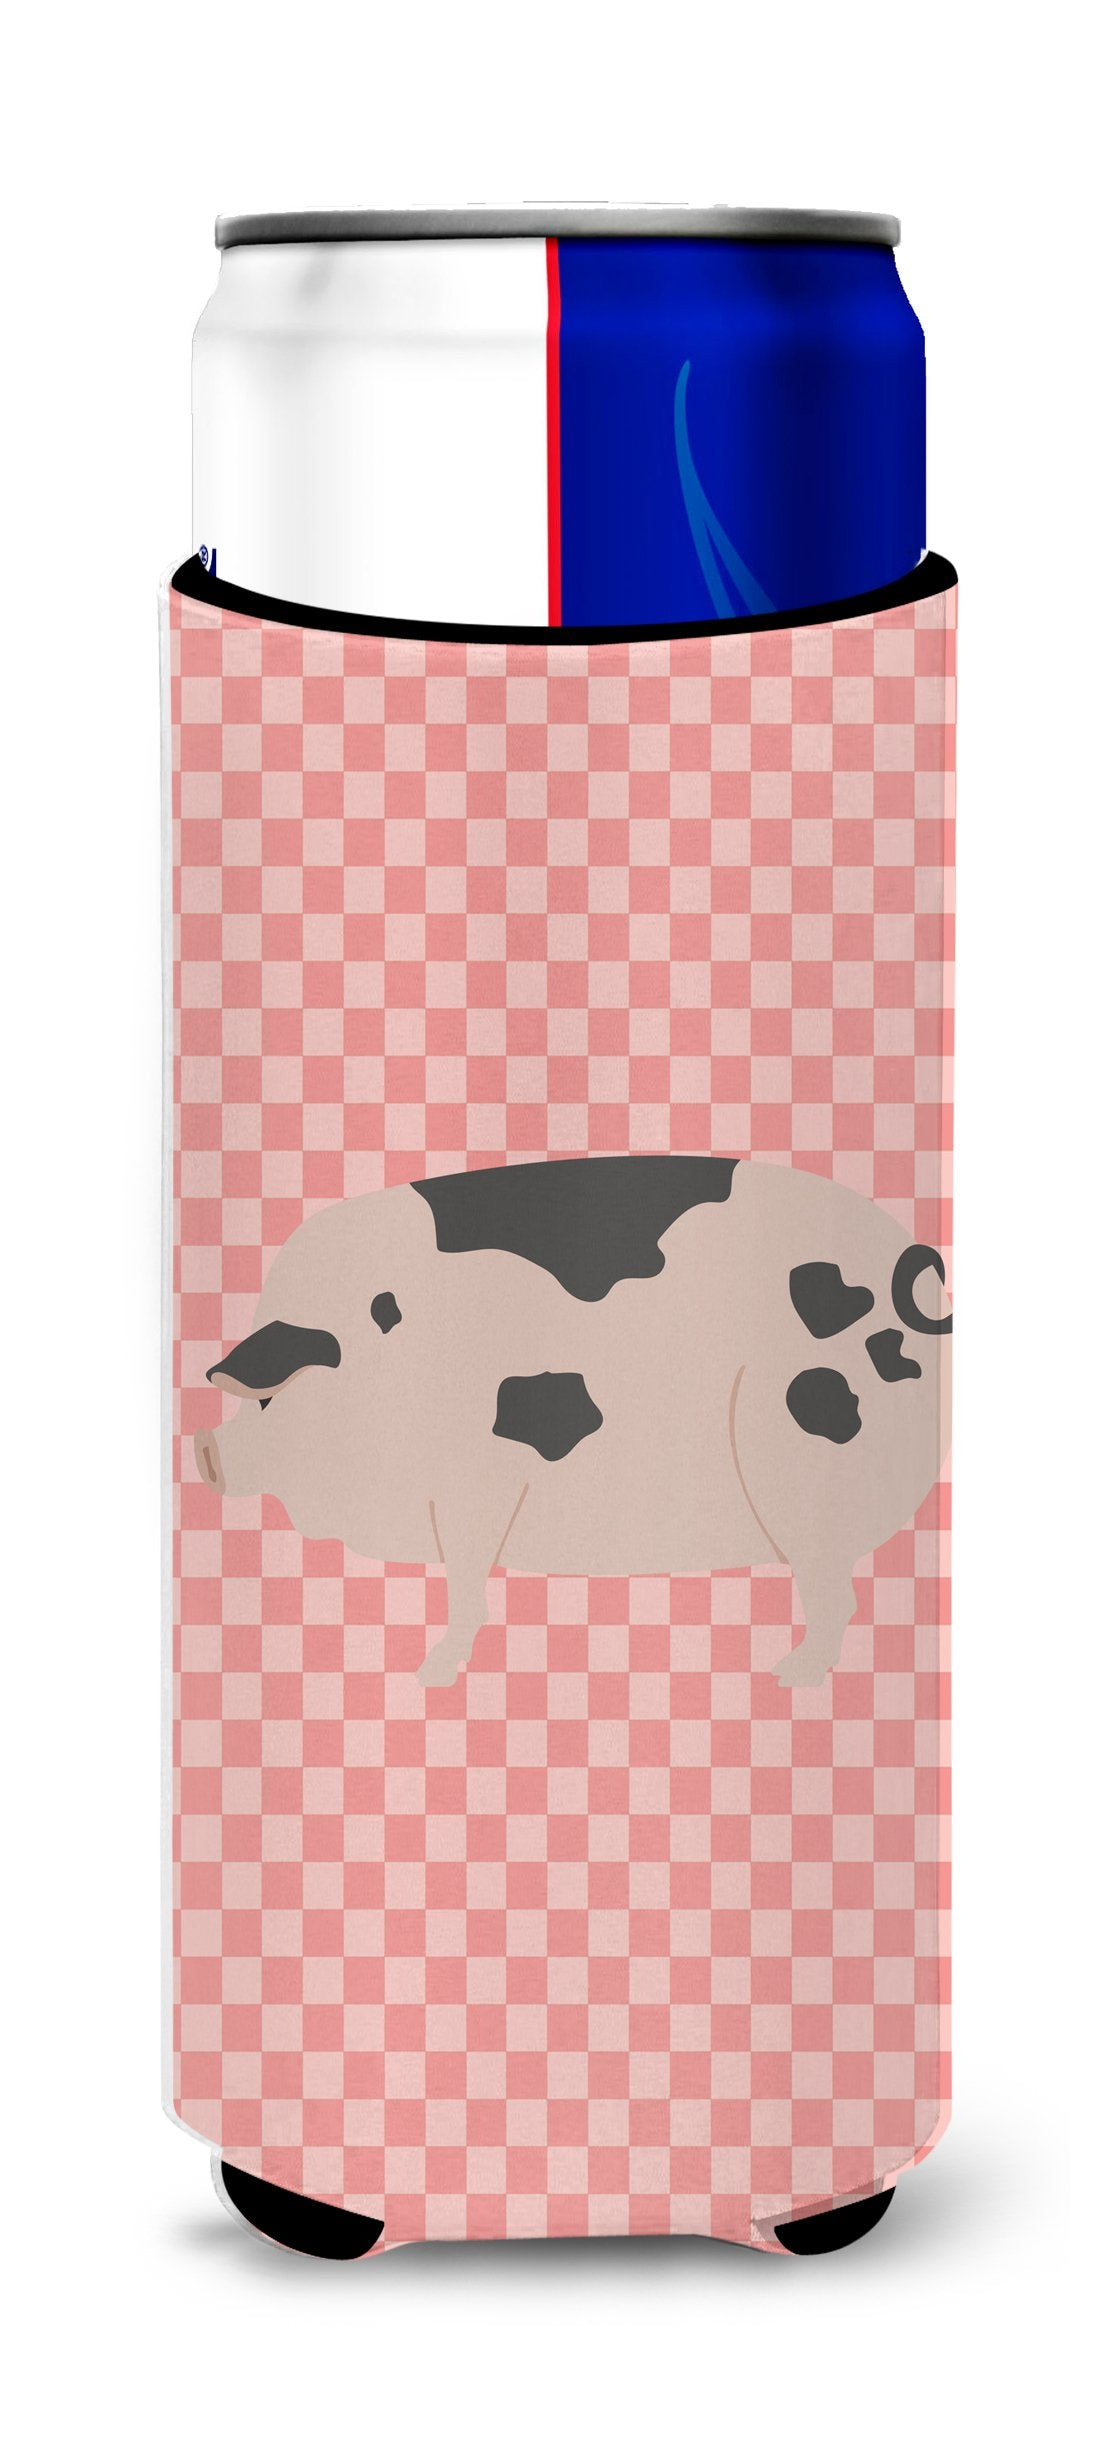 Gloucester Old Spot Pig Pink Check Michelob Ultra Hugger for slim cans by Caroline's Treasures